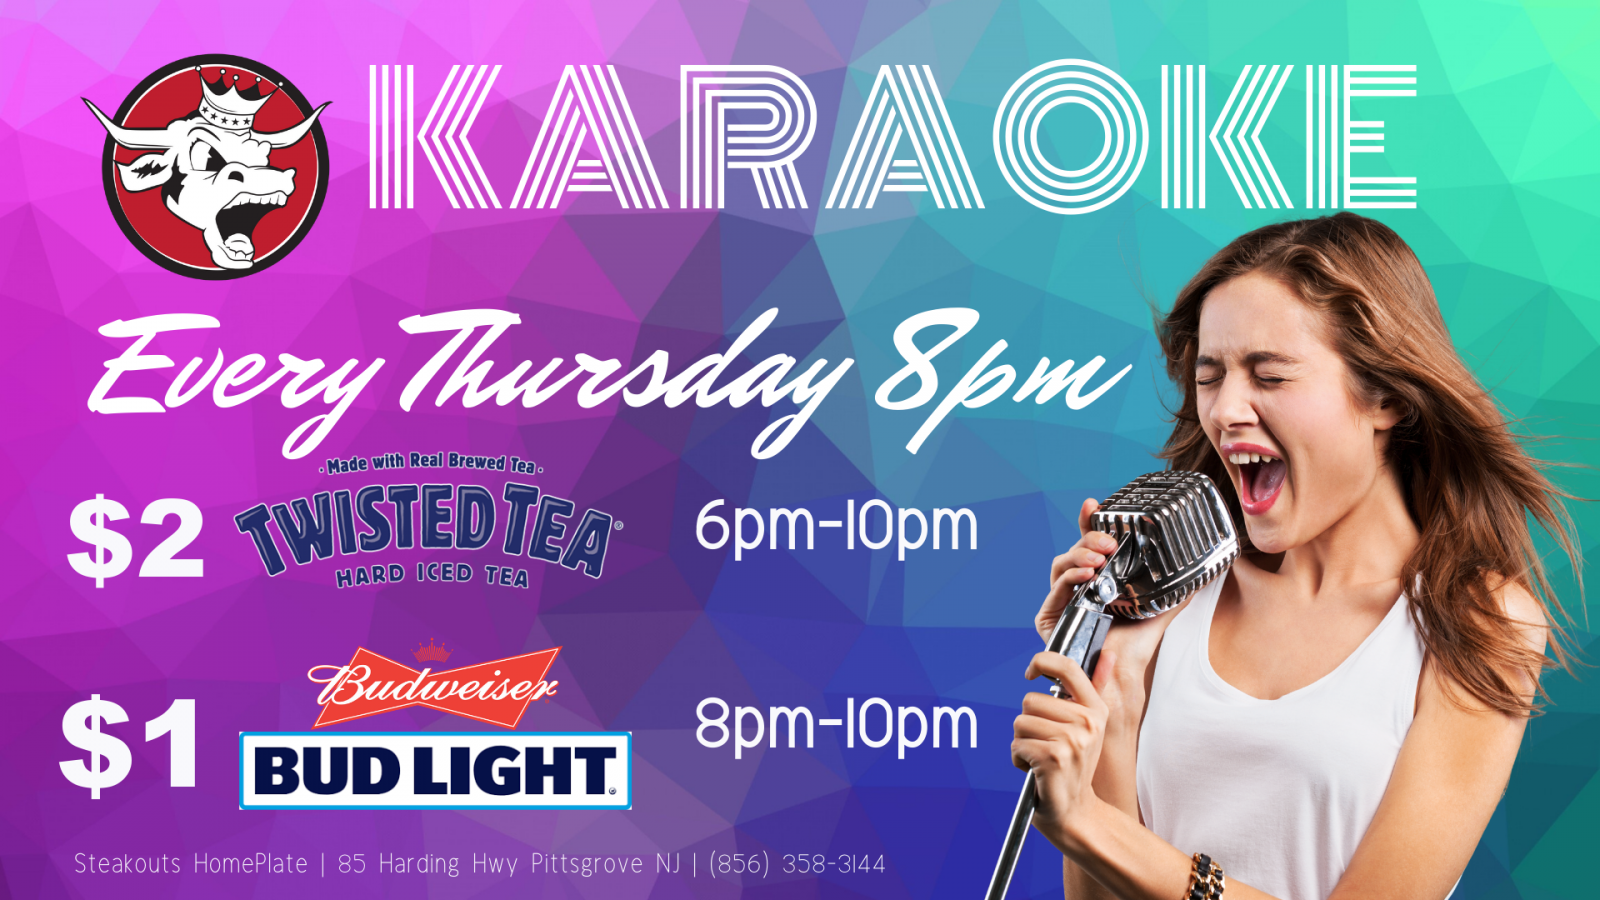 Thursday Karaoke Night at 8pm EST. Twisted Tea, Bud and Bud light specials